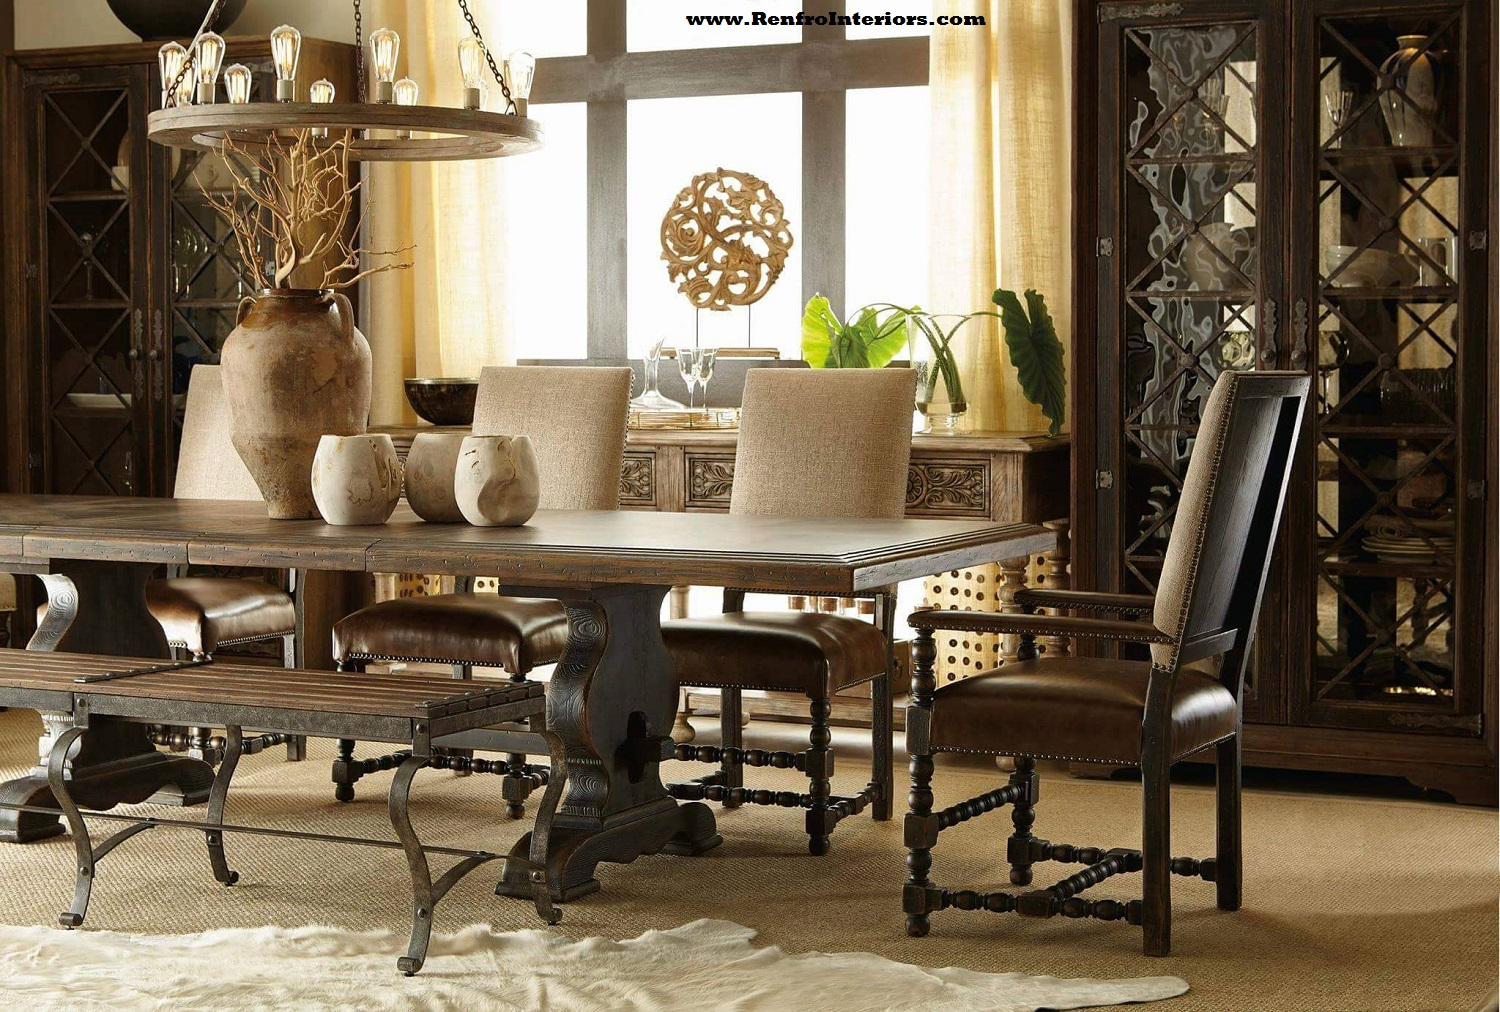 fine living room furniture gypsum ceiling designs for 2017 renfro interiors erin doug interior designer maitland smith specializes in home furnishings and accessories including